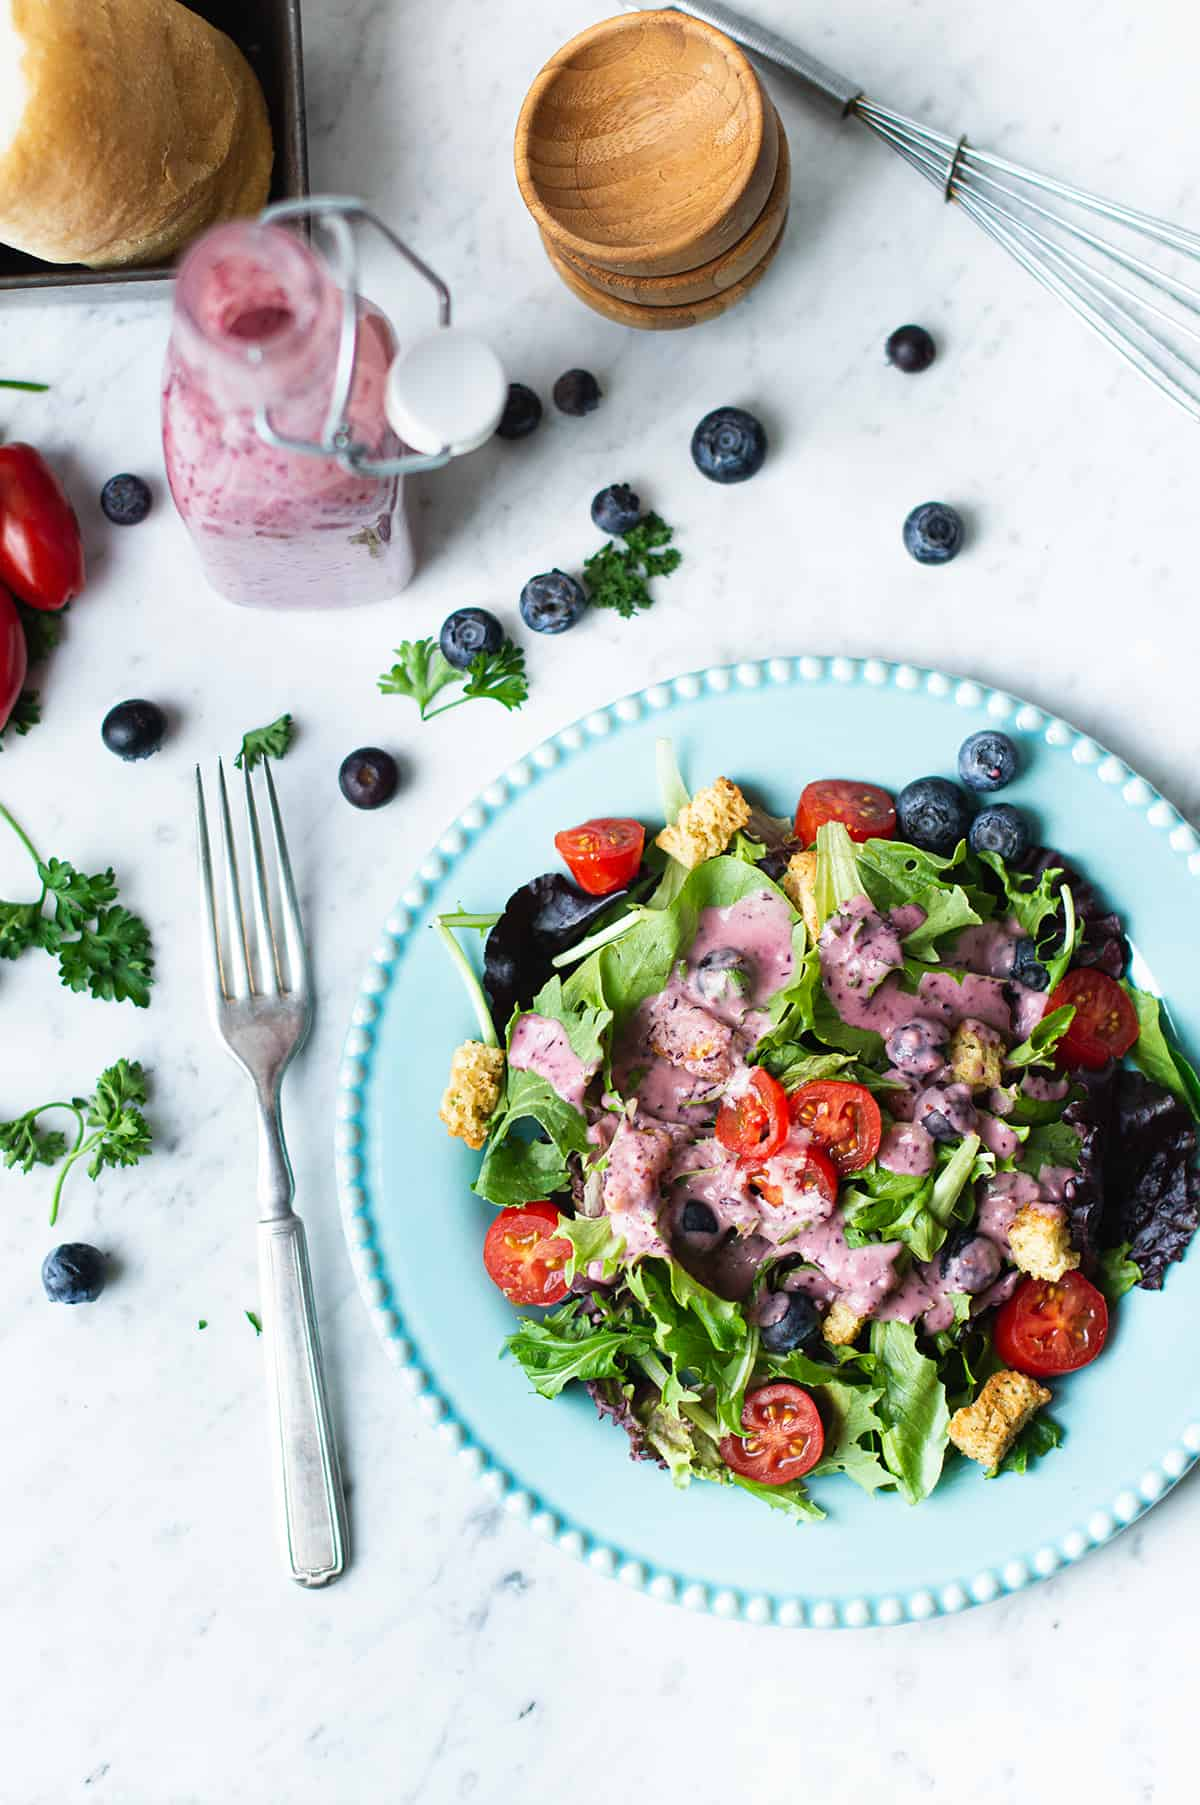 mixed greens drizzled with blueberry vinaigrette on a blue plate with fork